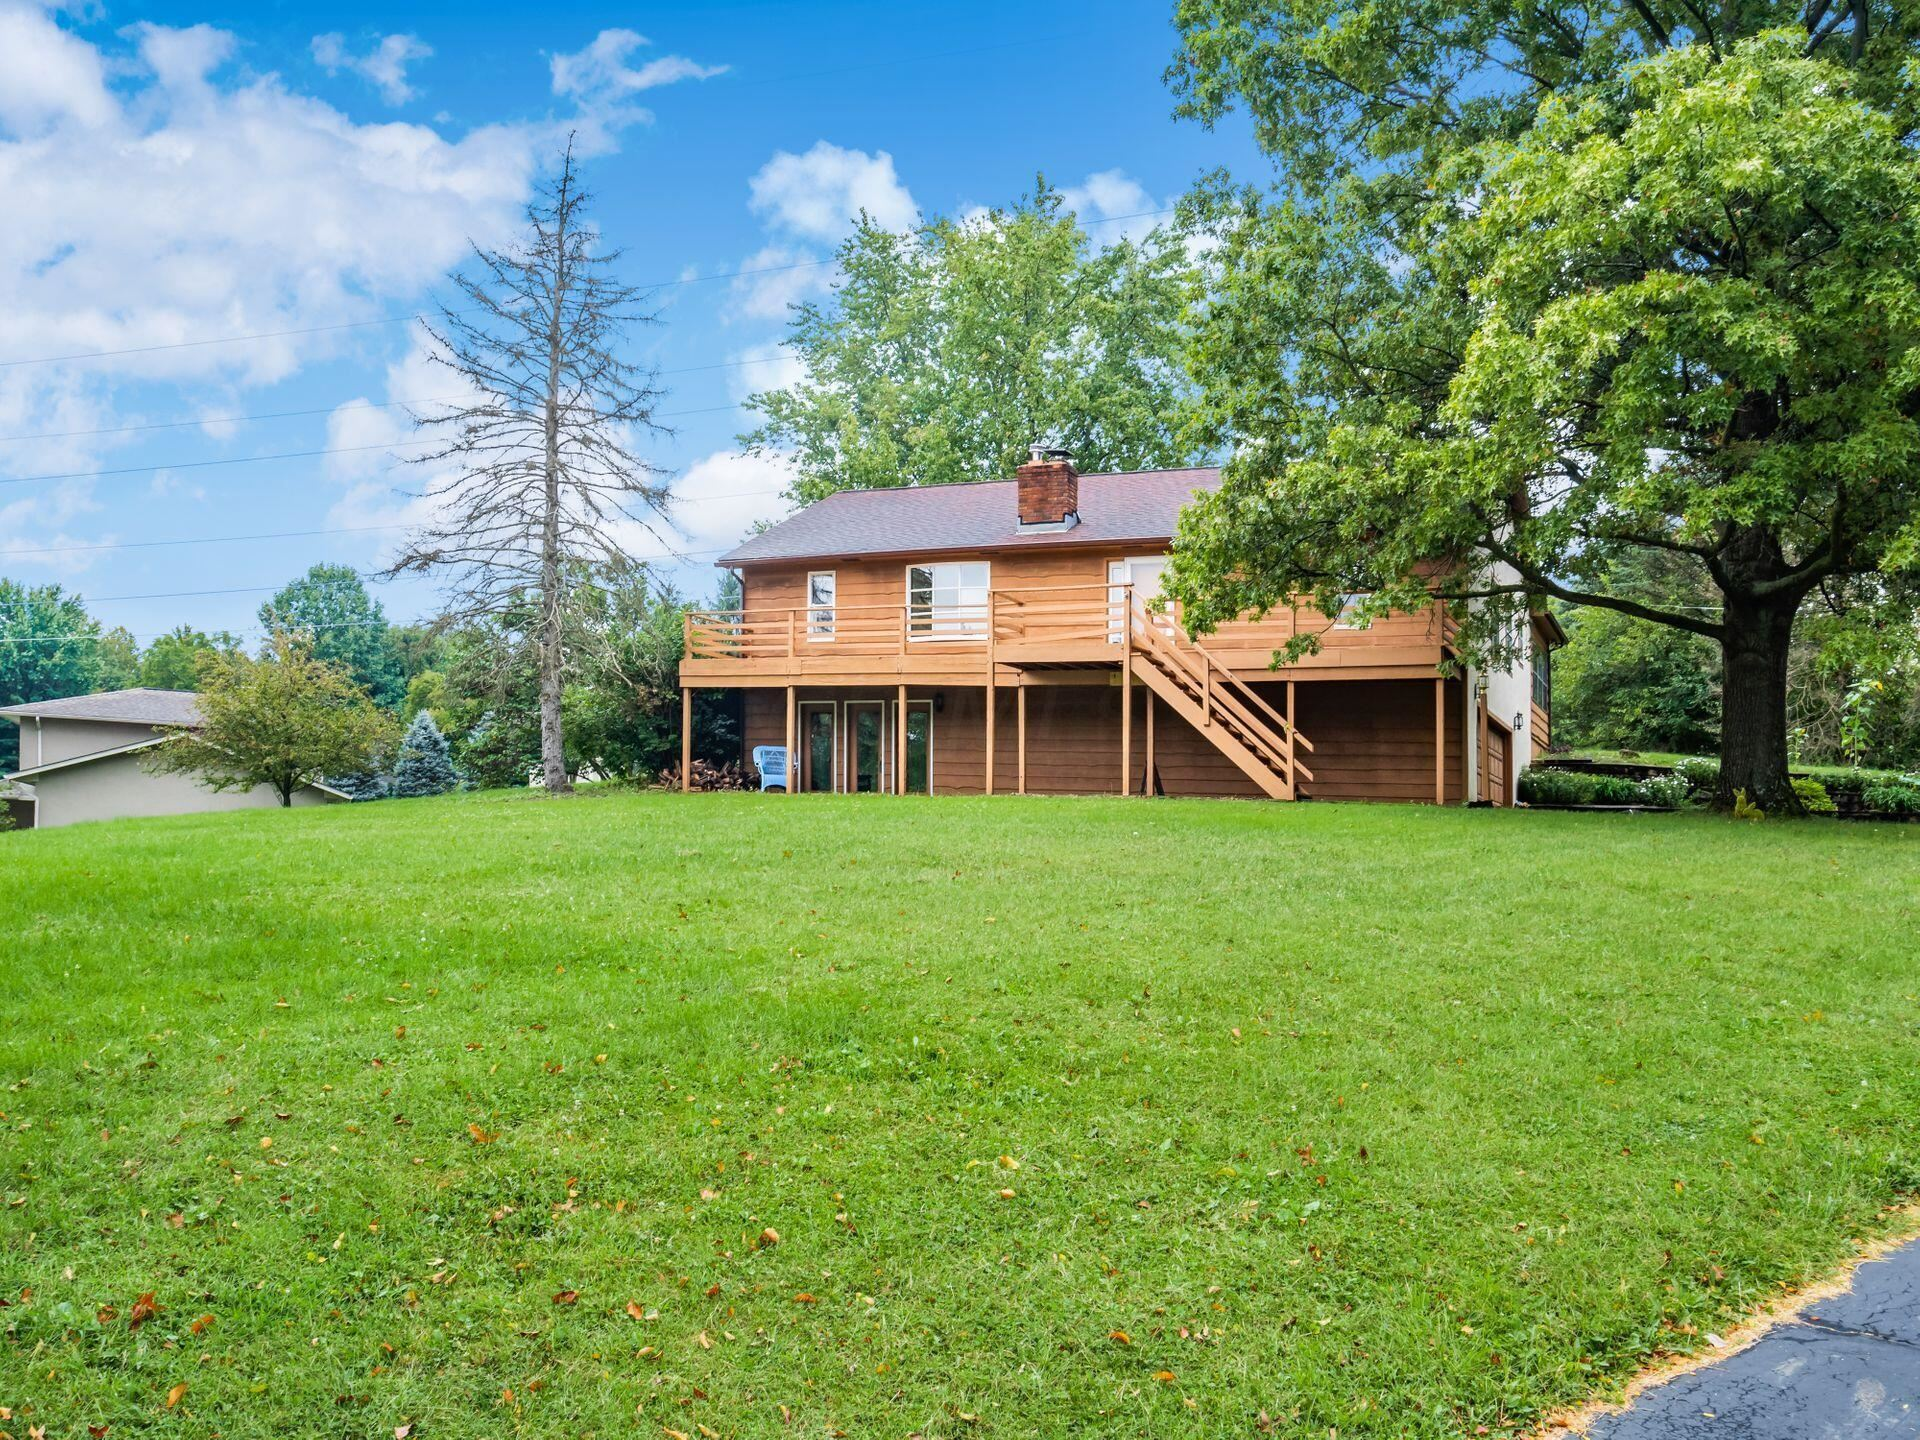 Photo of 4985 Parkmoor Drive, Westerville, OH 43082 (MLS # 221036265)